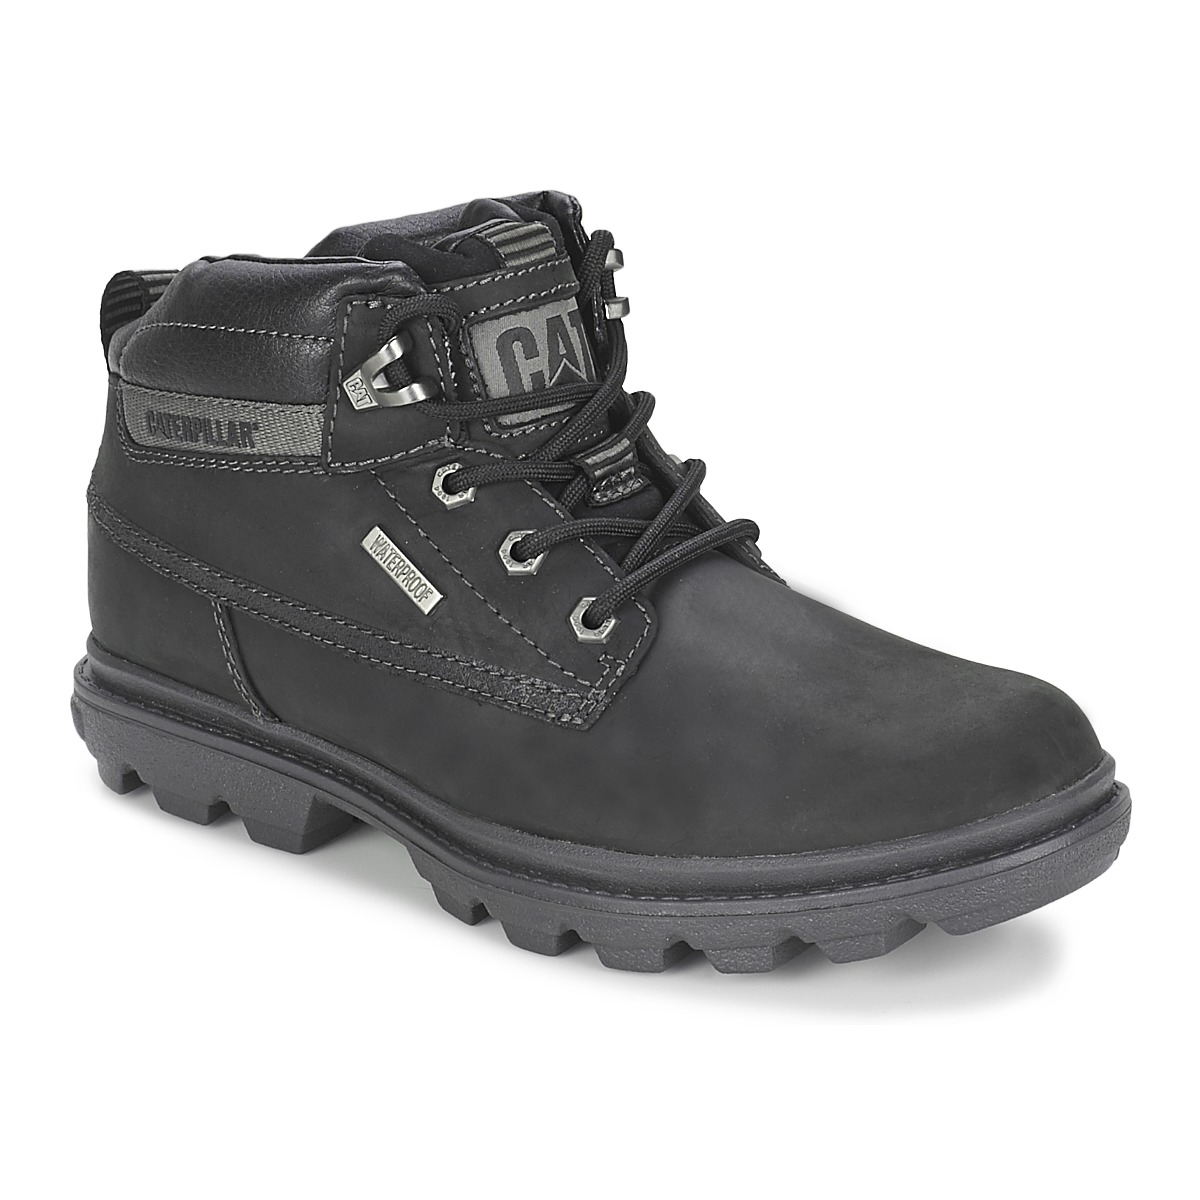 Caterpillar GRADY waterproof Noir